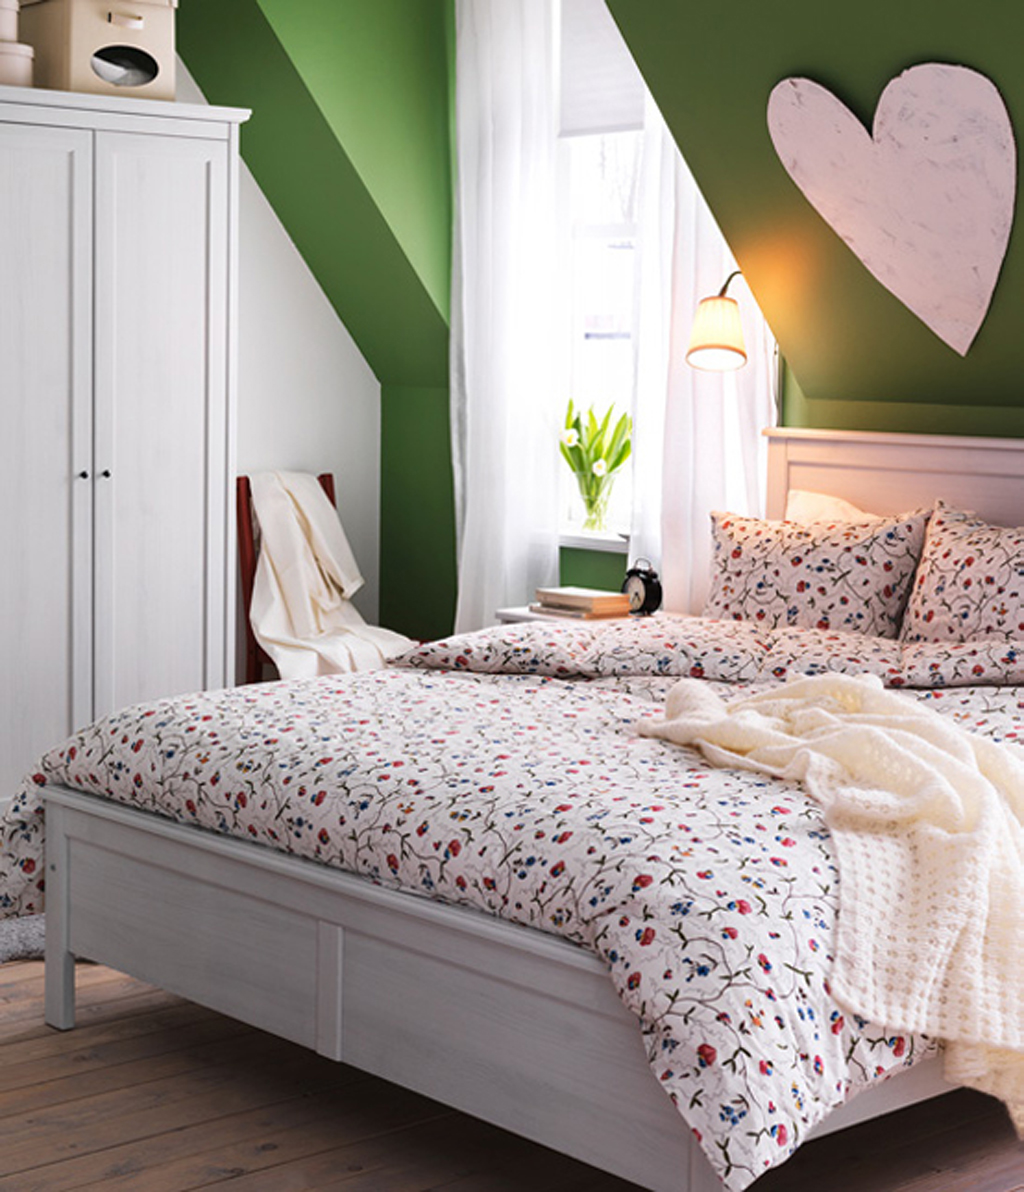 lovely IKEA bedroom inspirations 2011 - Iroonie.com - photo#27